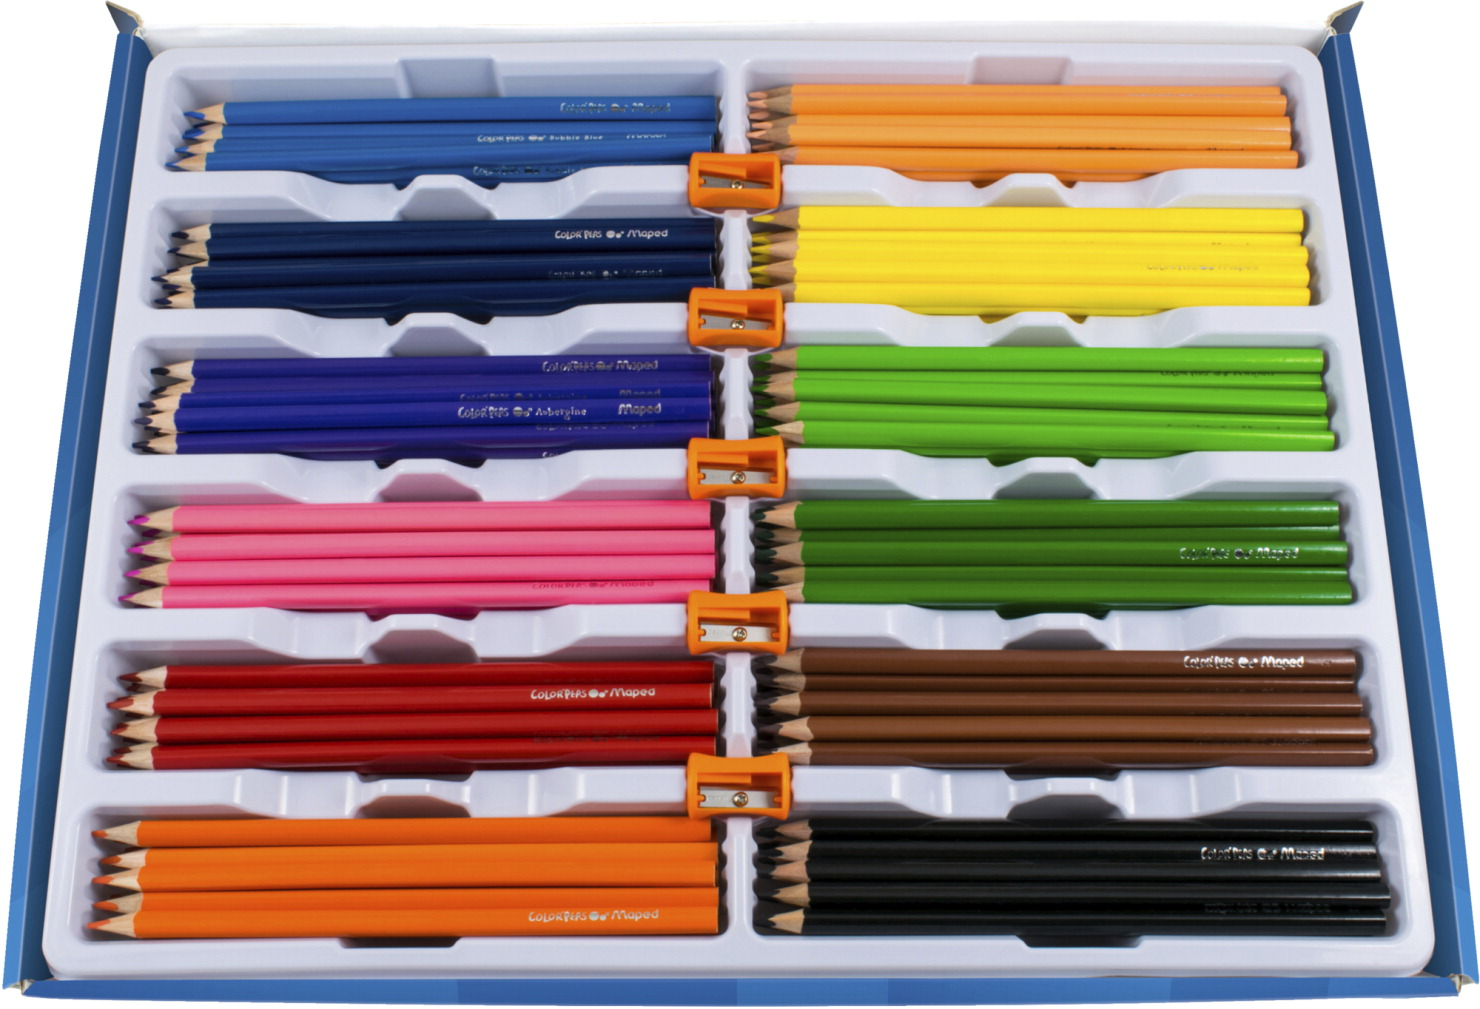 Maped Color'Peps Triangular Colored Pencils Classroom Pack, Assorted Colors, 240 Pieces